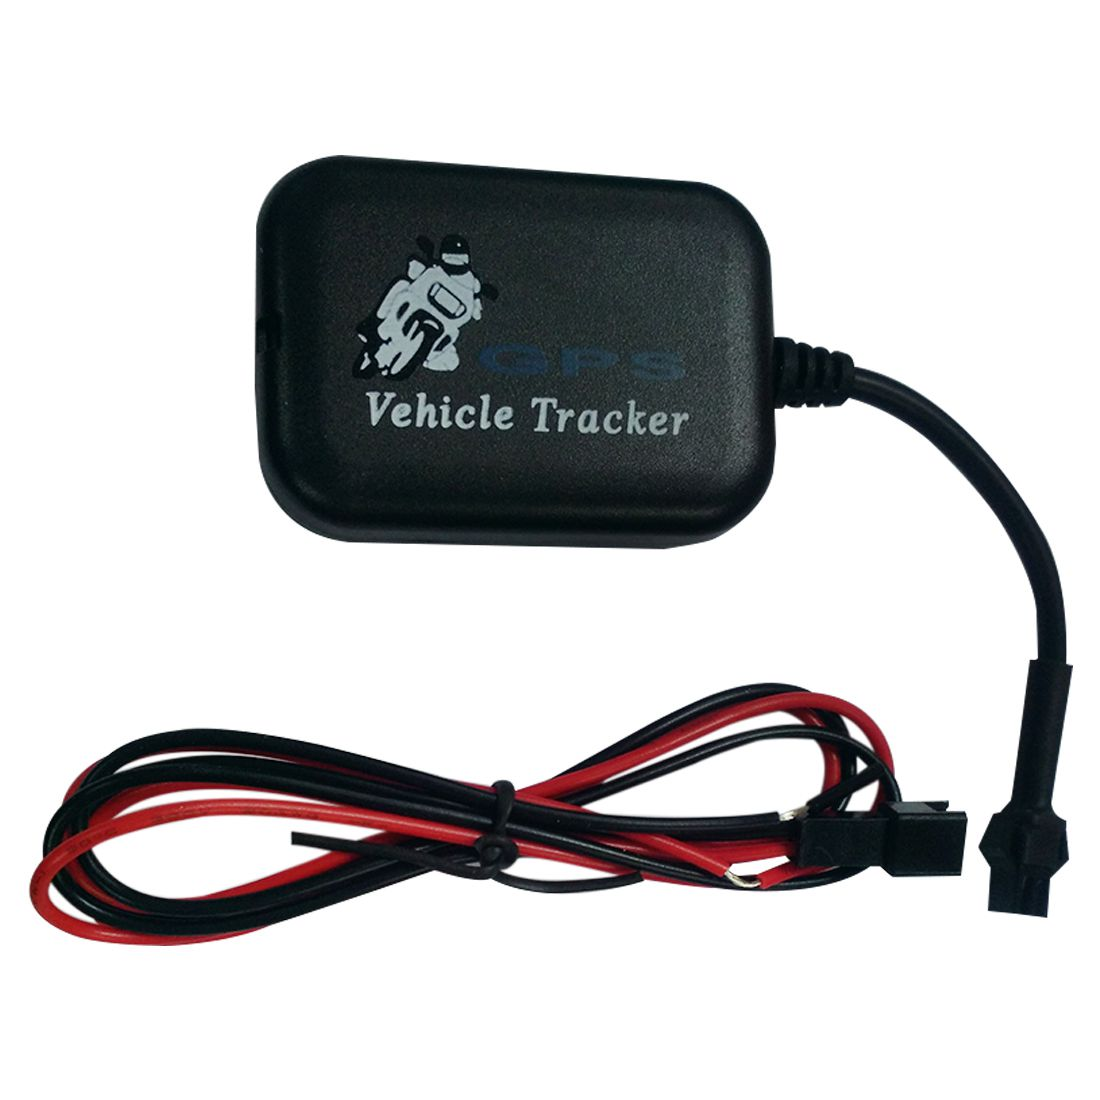 EDFY-GPS locator TX-5 miniature hidden gps locator for motorcycles